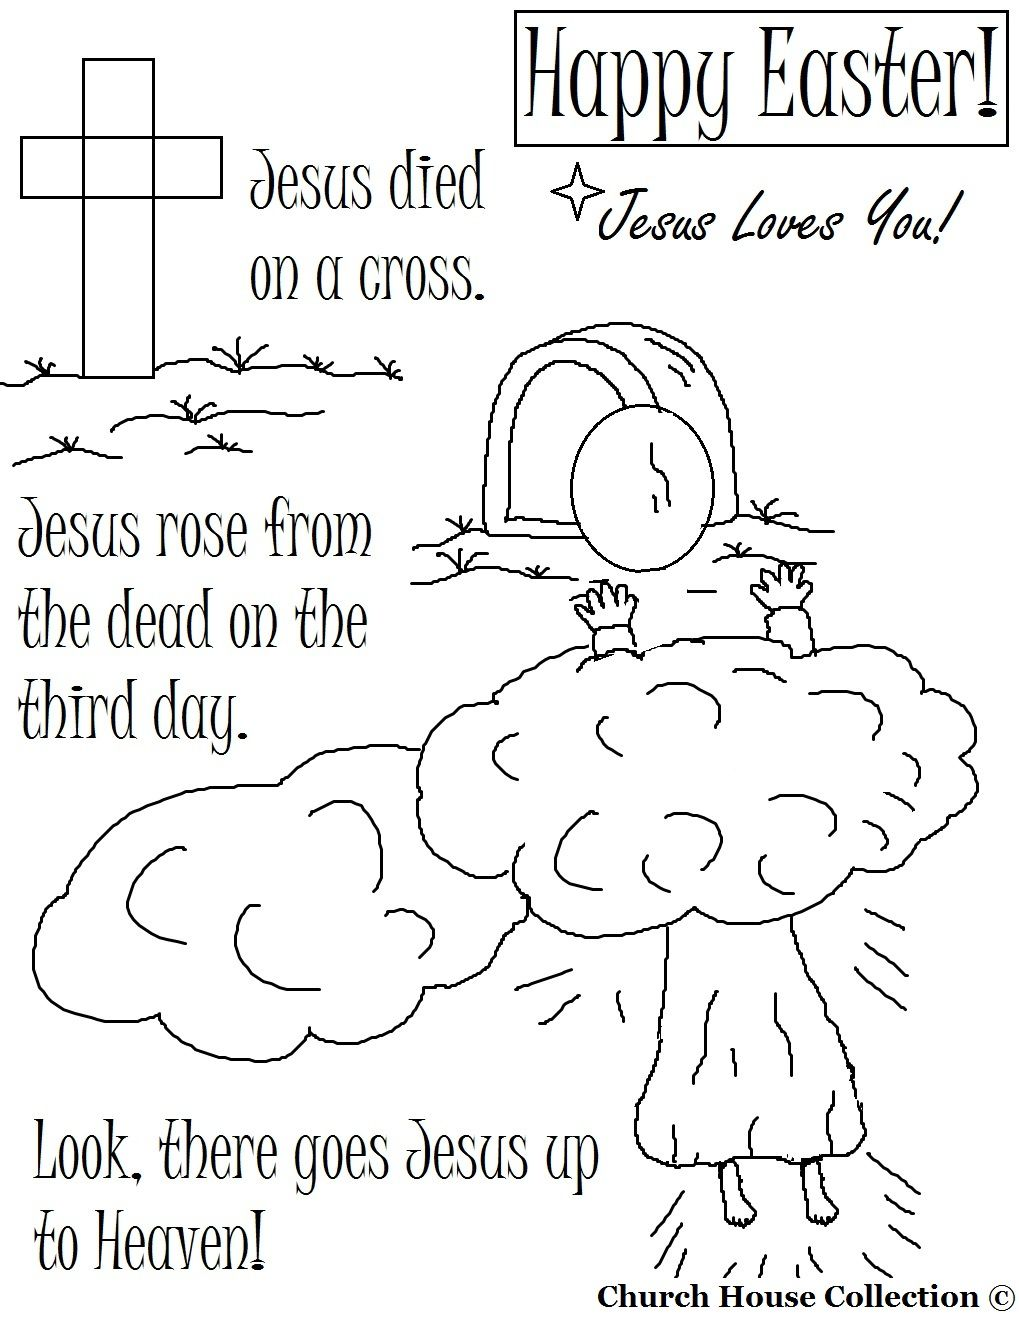 Pin by Melissa Rieckenberg Clark on Easter | Pinterest | Jesus ...